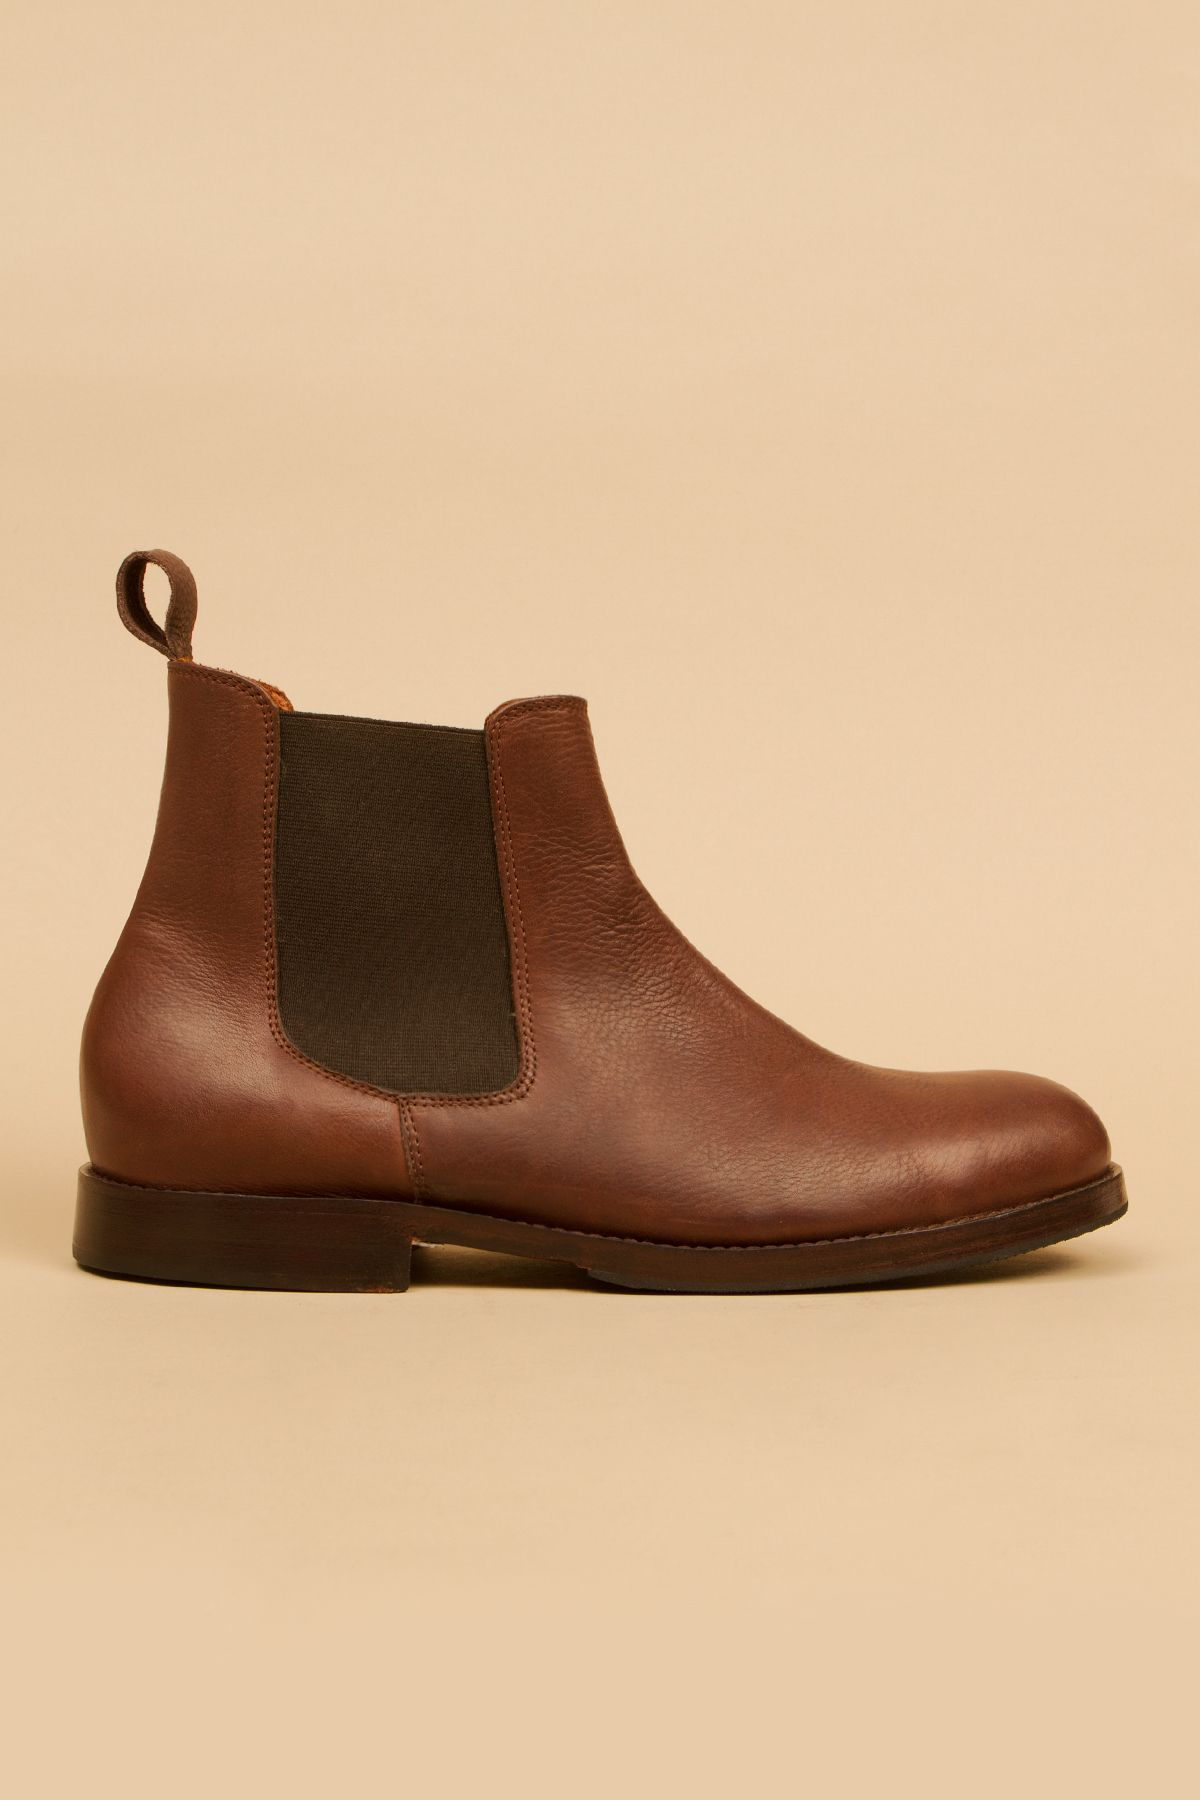 CENTRICO CHELSEA BOOTS - 9109 - MEN - FOOTWEAR - CENTRICO - OPENING CEREMONY